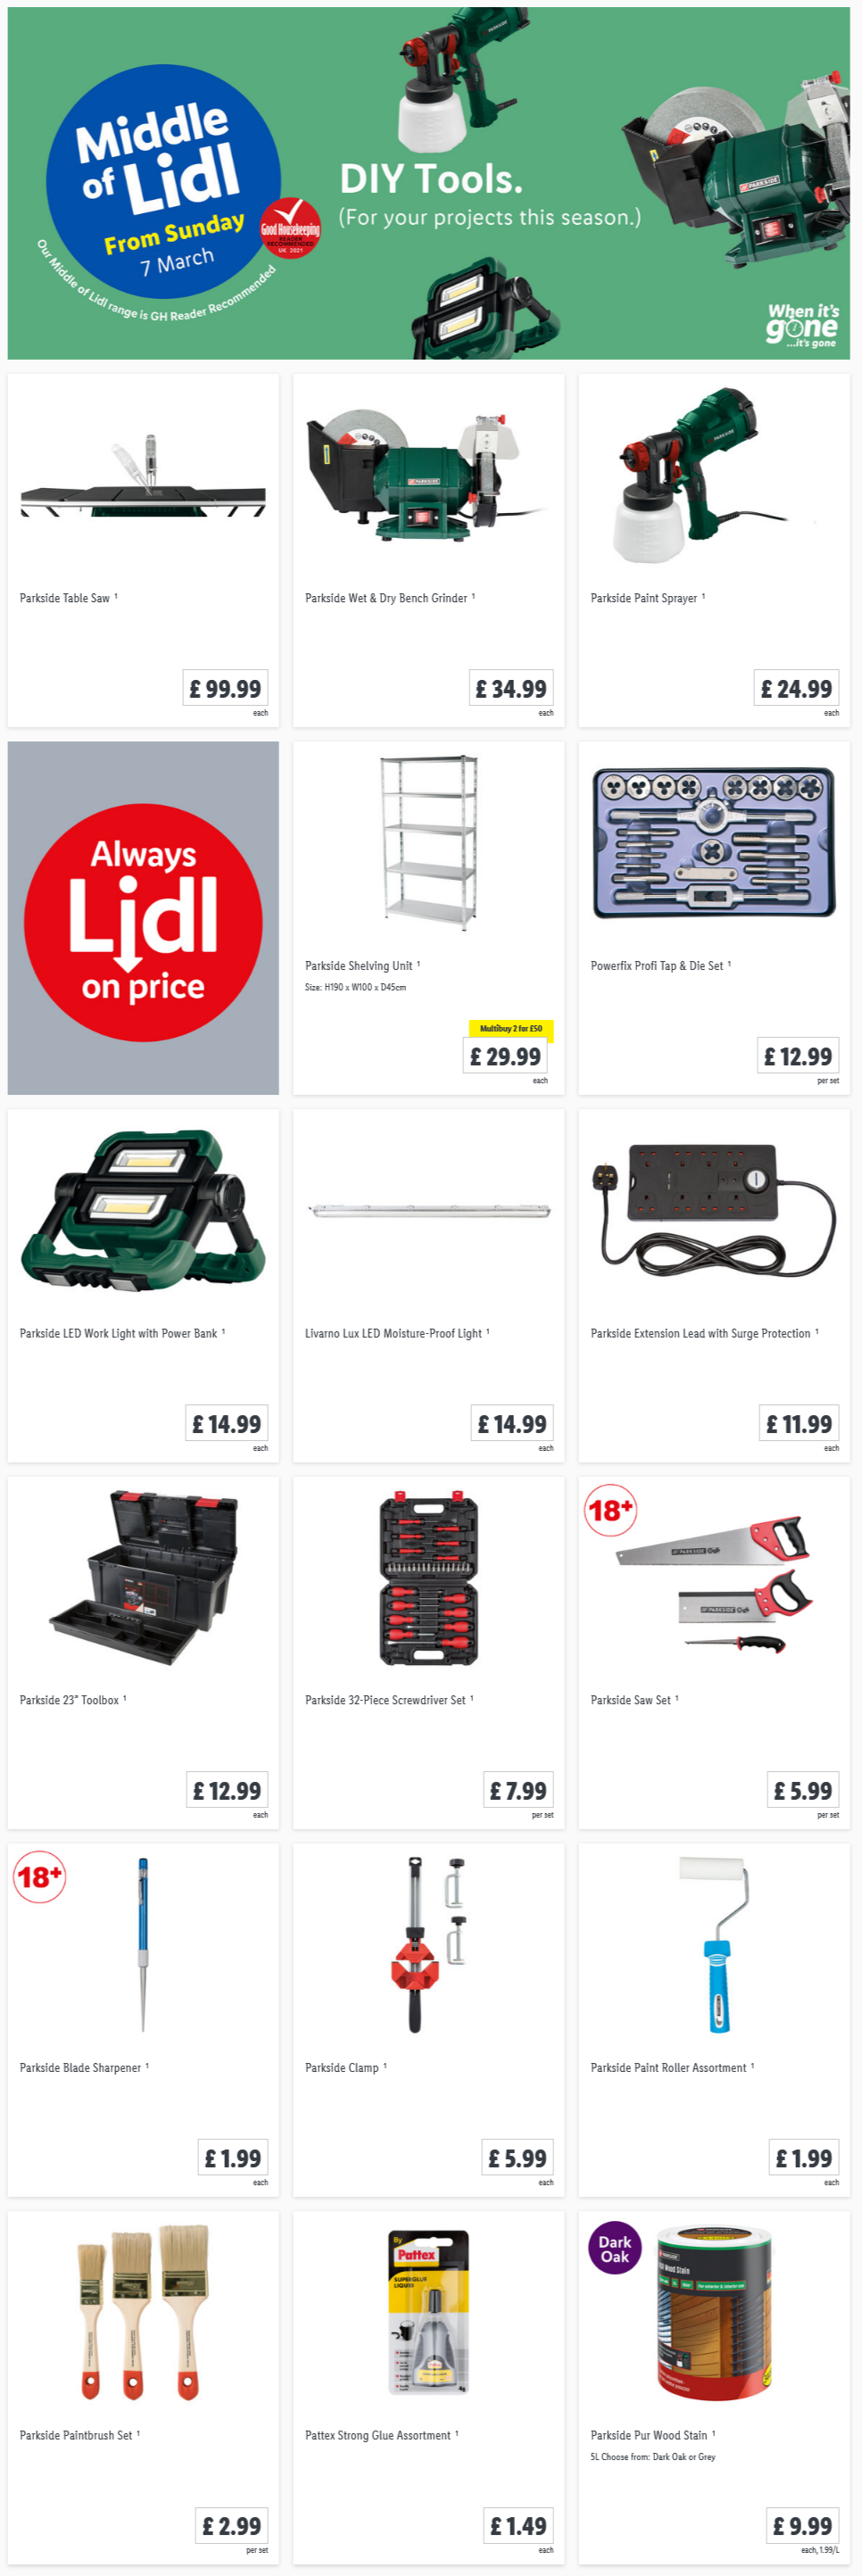 LIDL DIY Tools Offers From Sunday, 7th March 2021